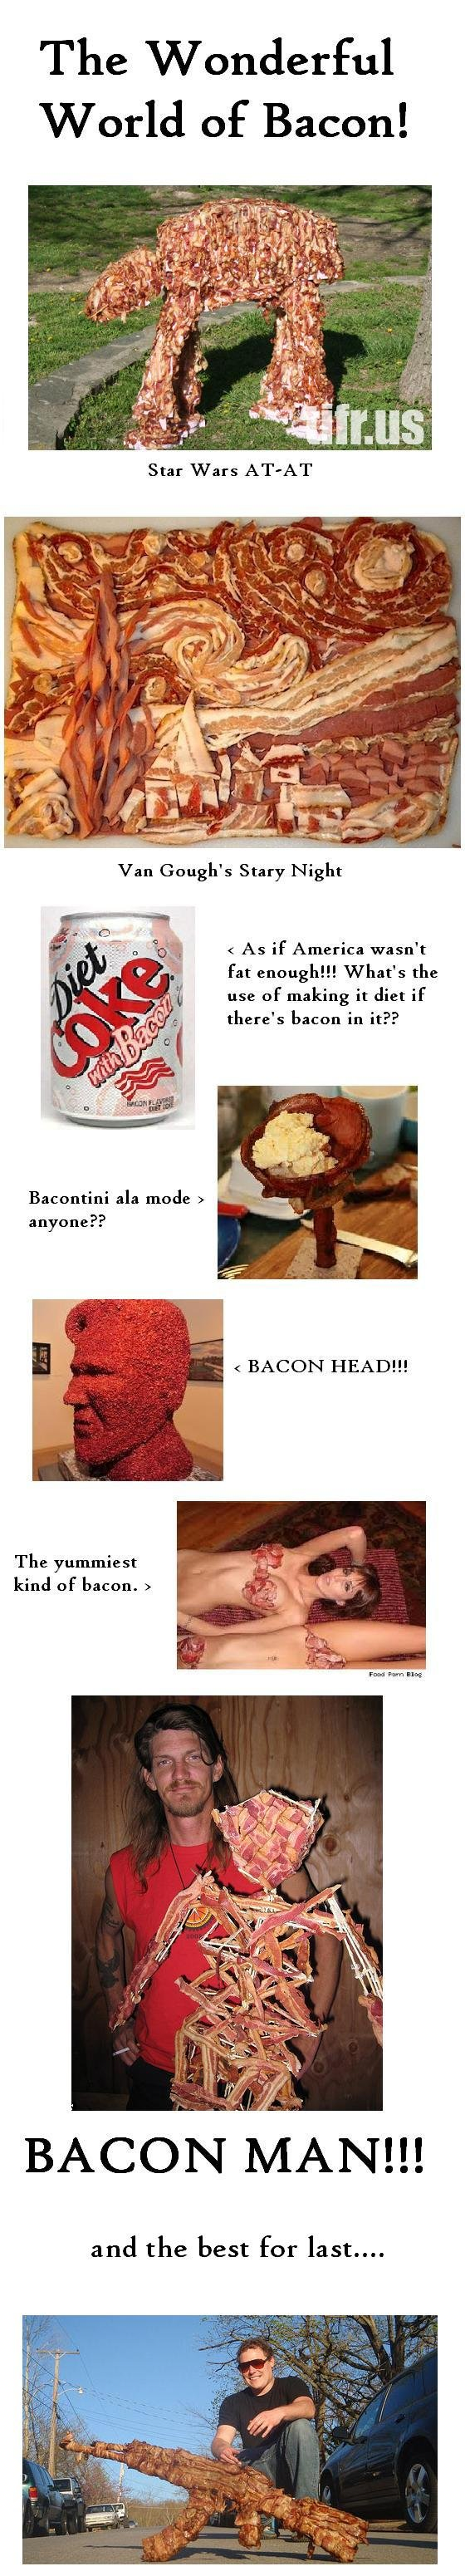 Bacon, Bacon, Bacon. I love bacon and I figured my fellow funny junkers would appreciate these pictures as much as I do OC. l, l Wonderful World of Bacon! r: As